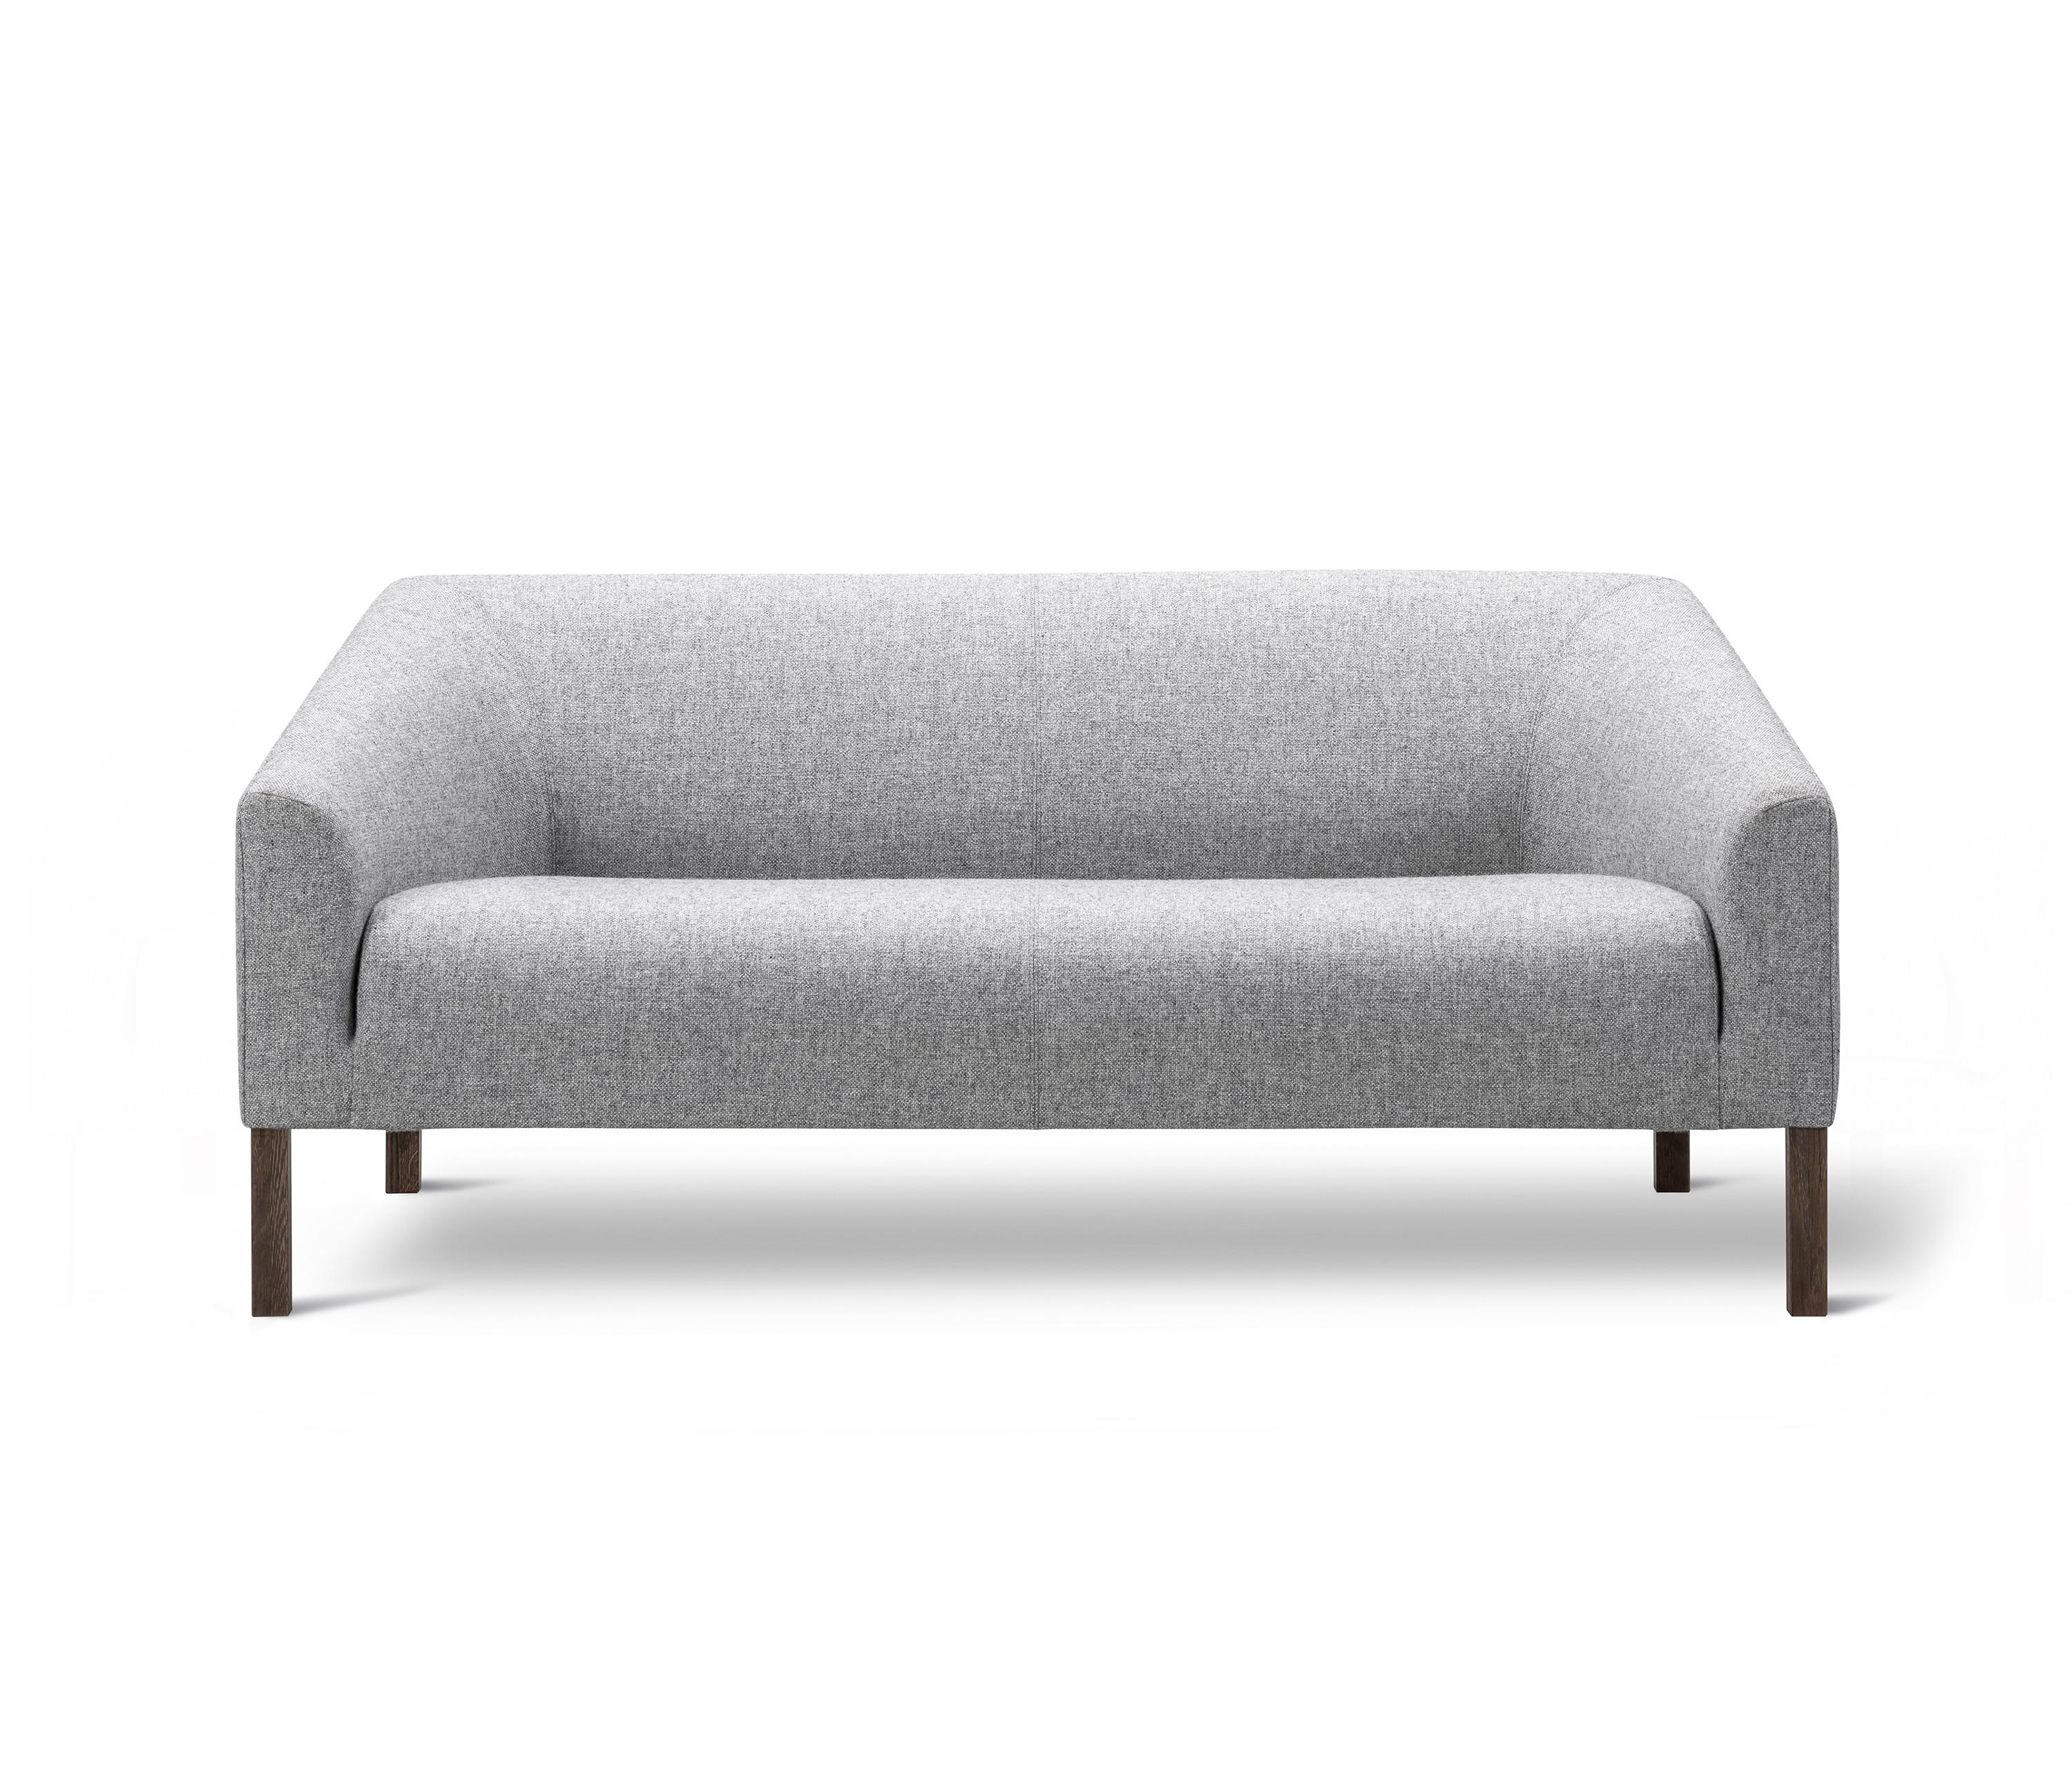 KILE SOFA 2-SEAT - Sofas from Fredericia Furniture | Architonic